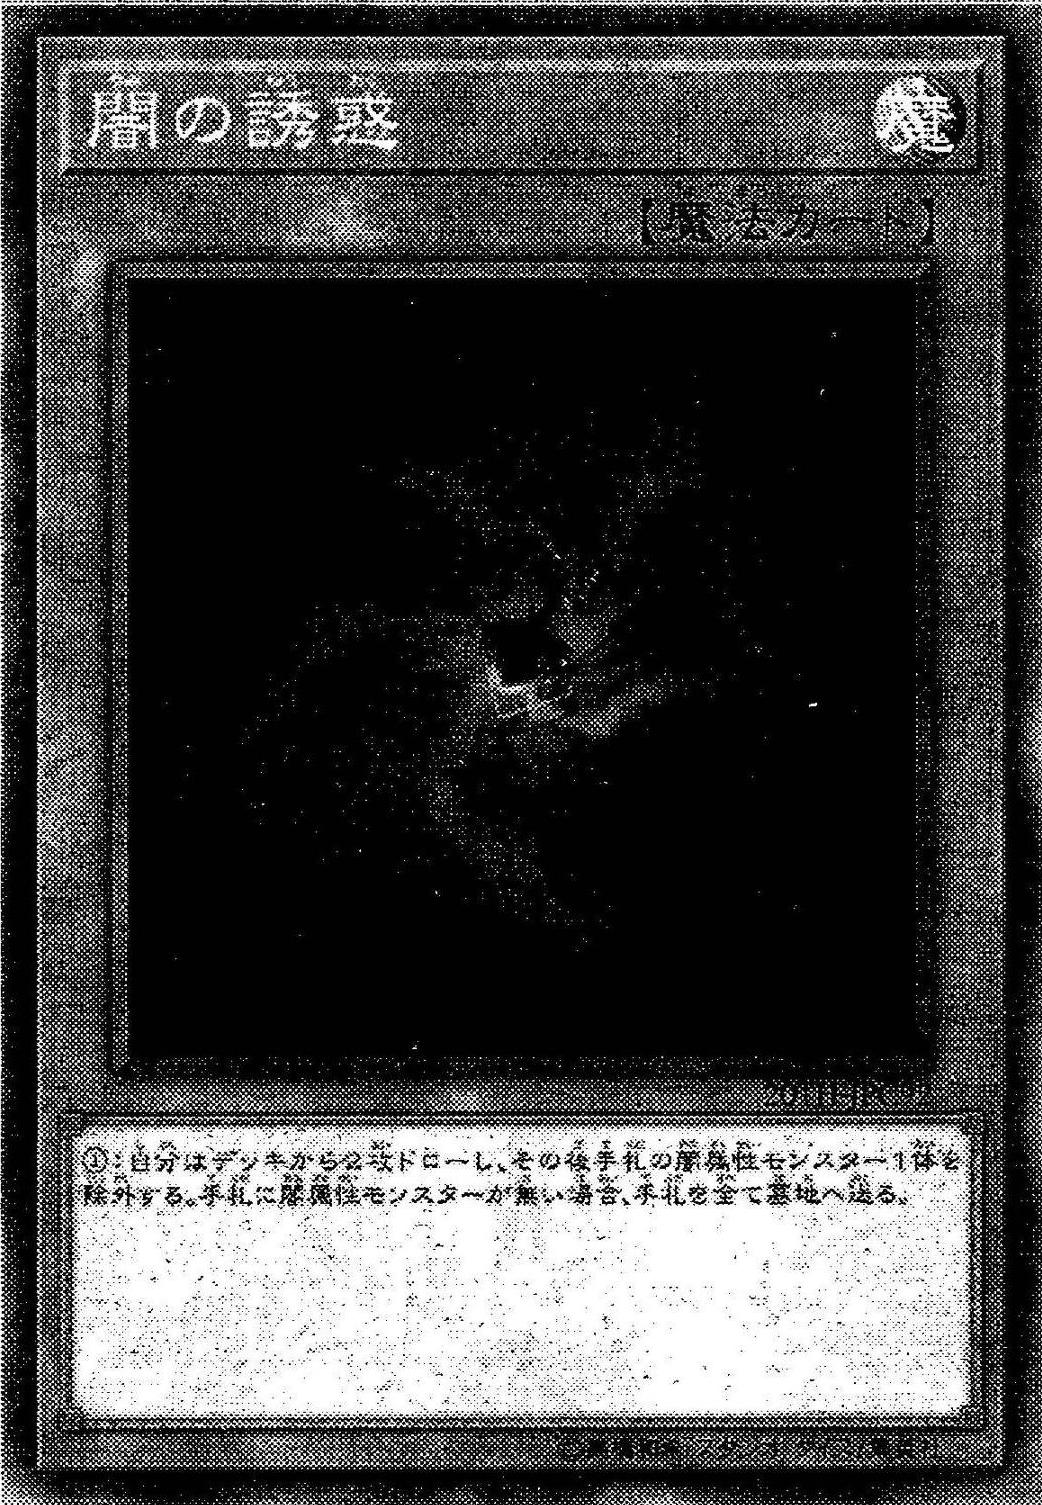 Allure of Darkness (OCG Structures)